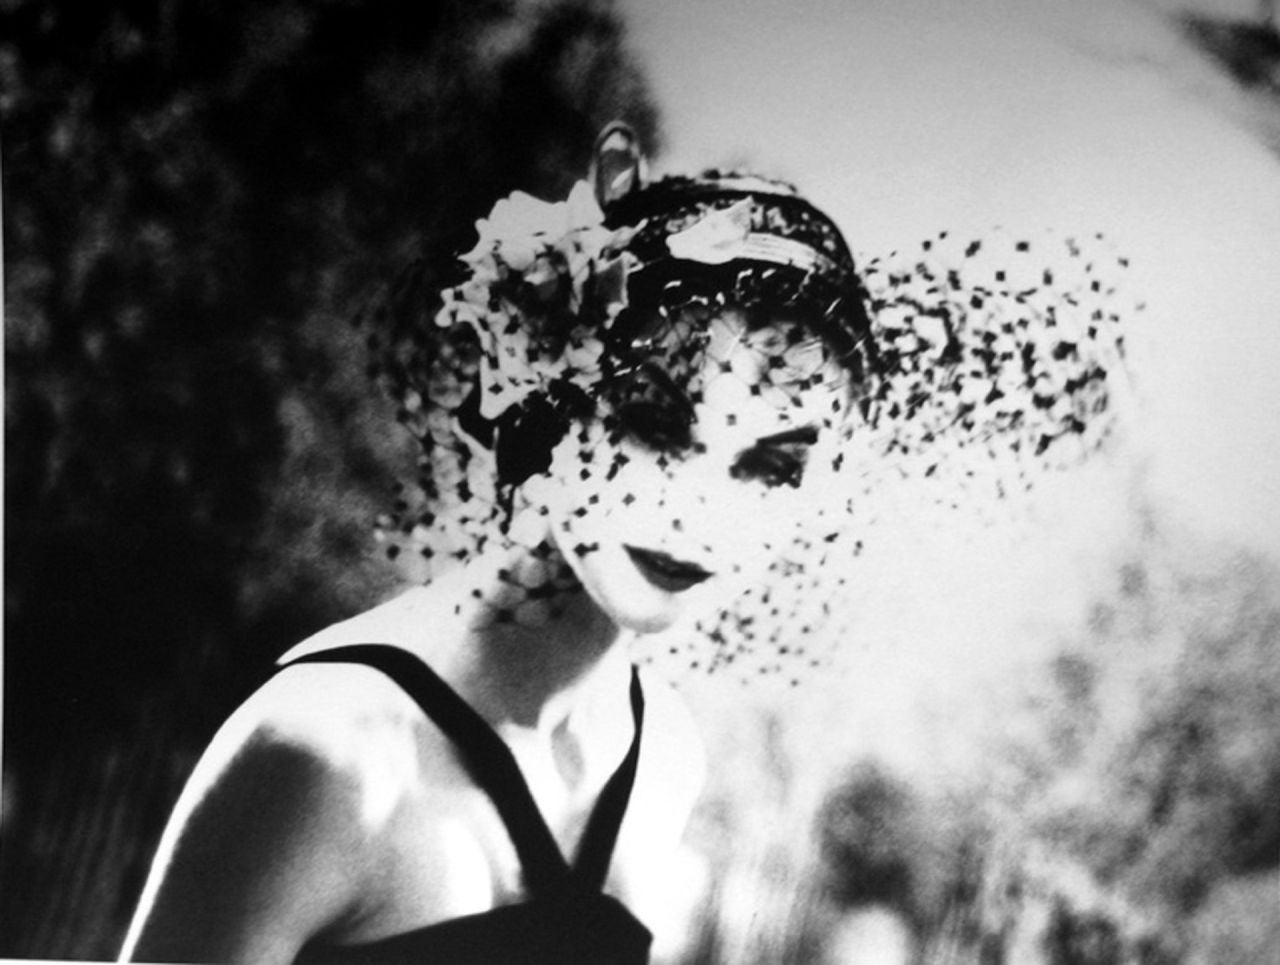 Anne Saint-Marie, New York, Chanel Advertising Campaign - Photograph by Lillian Bassman